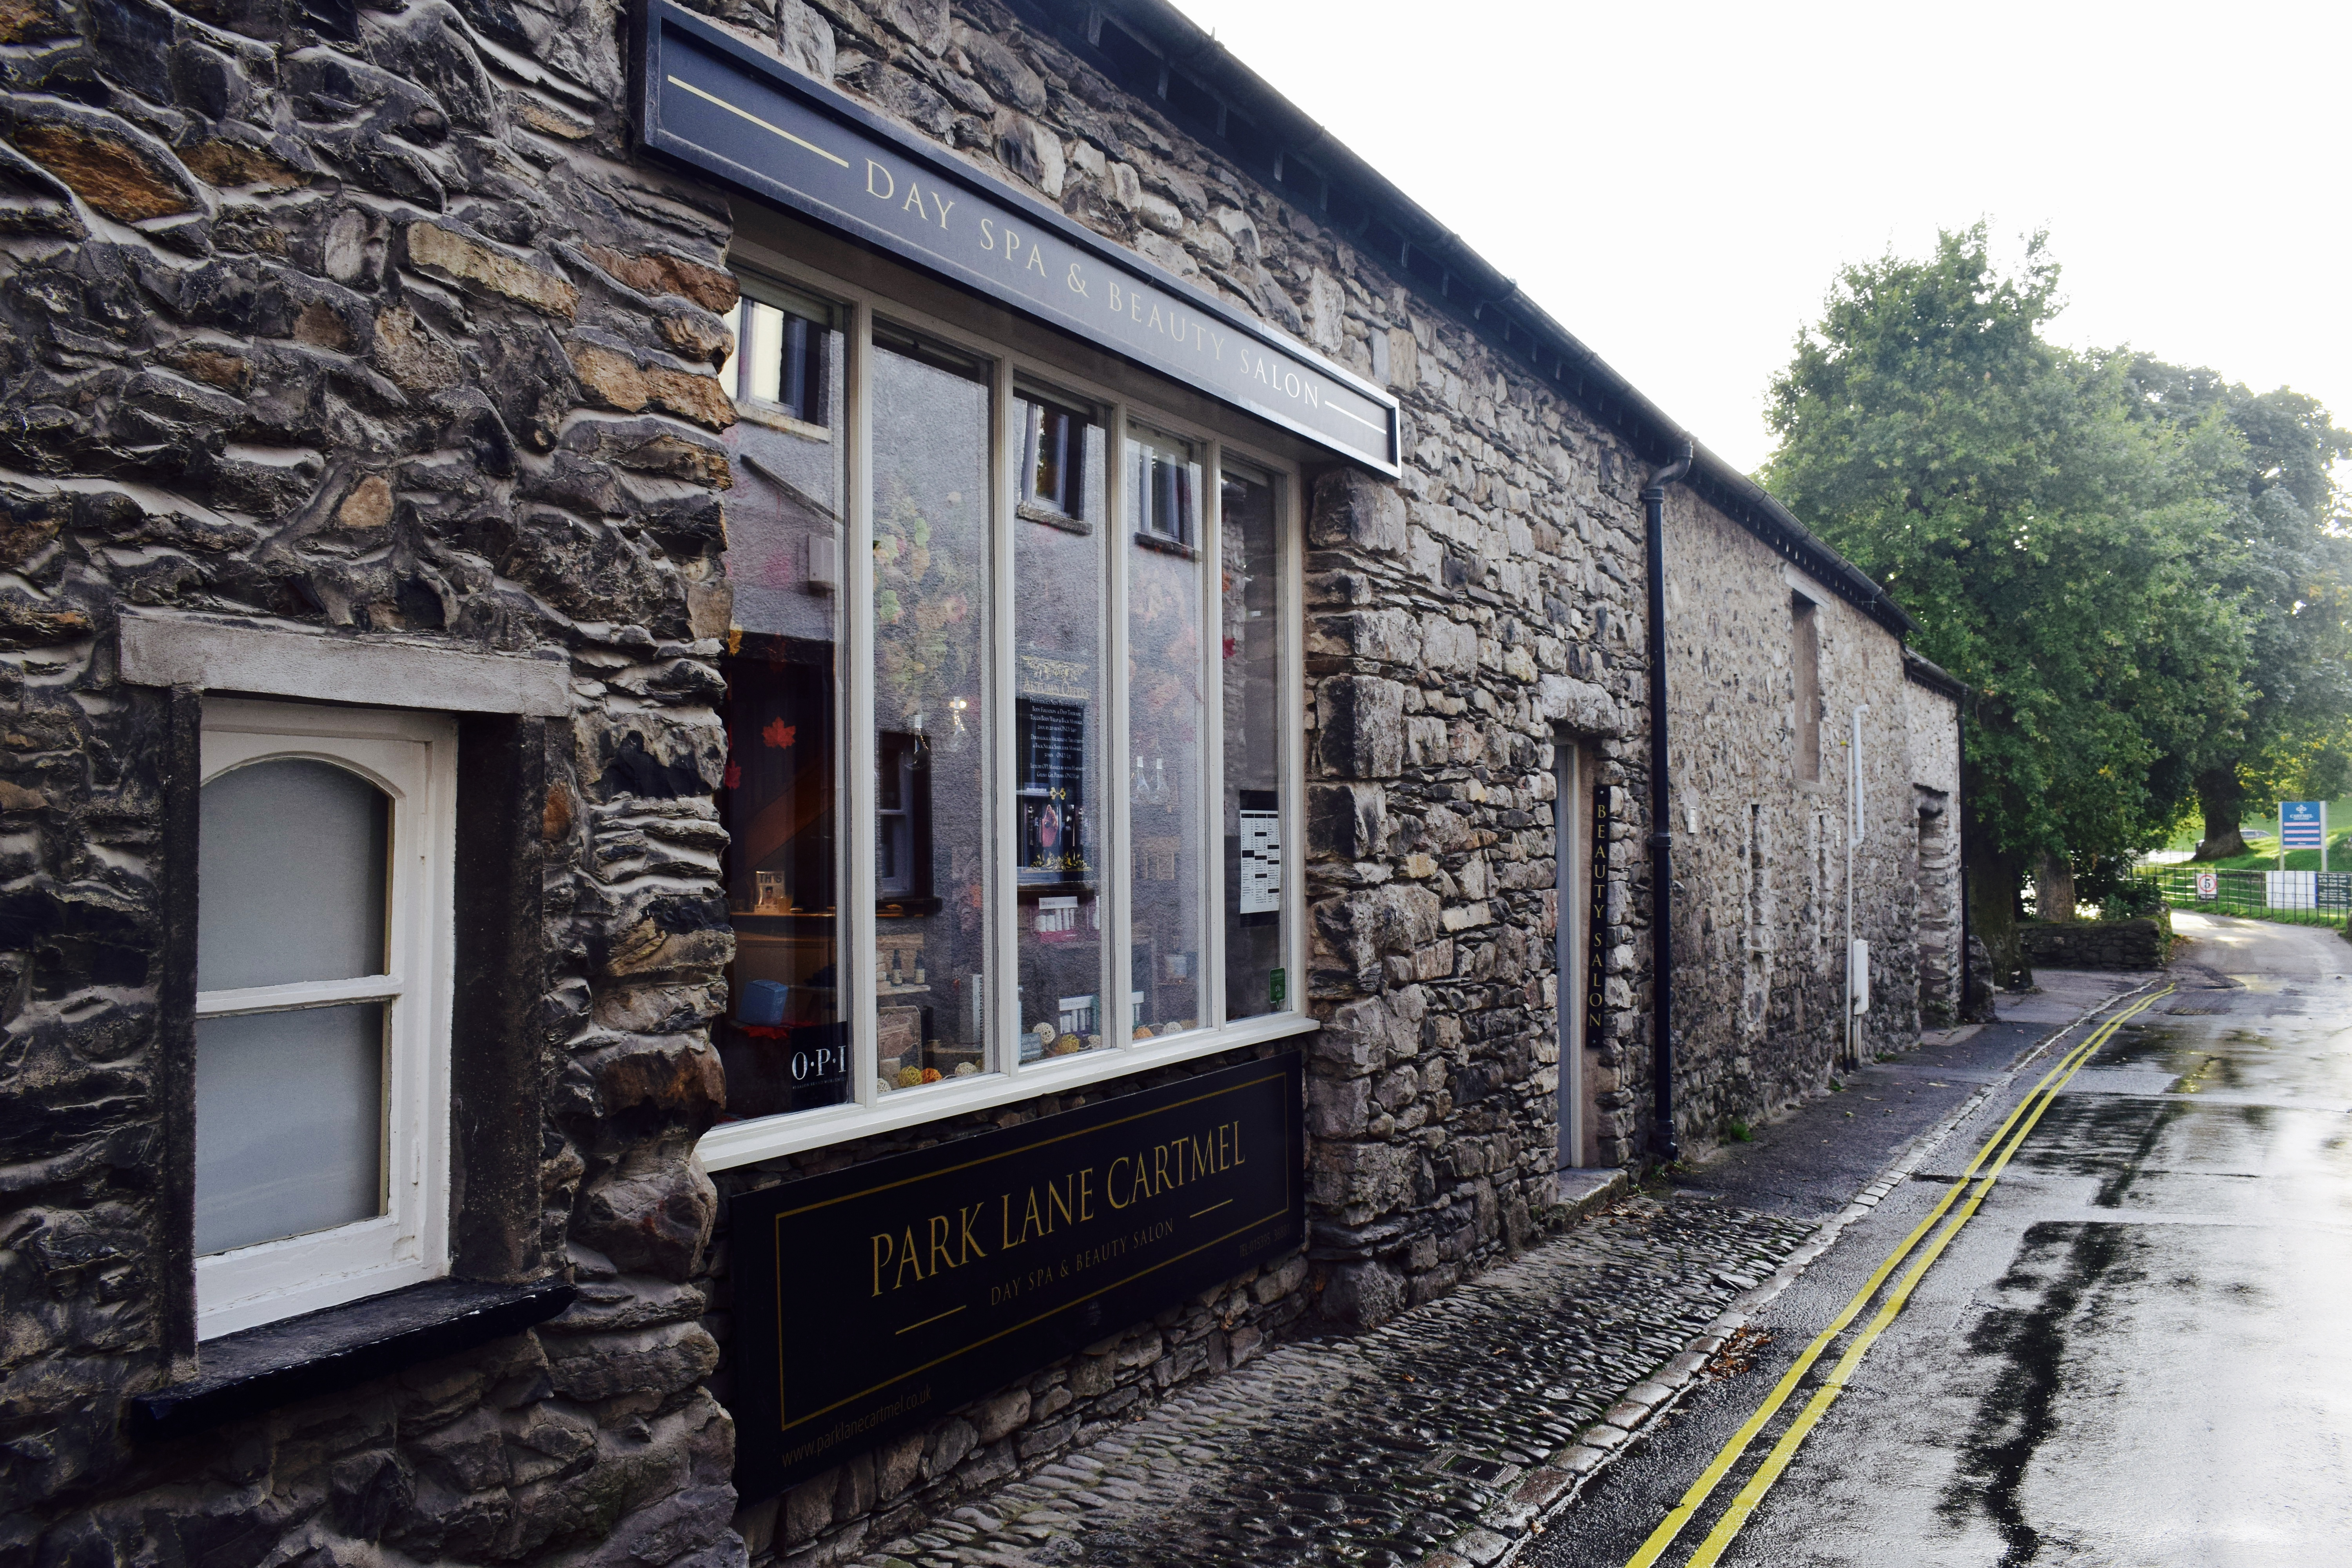 Park Lane Cartmel